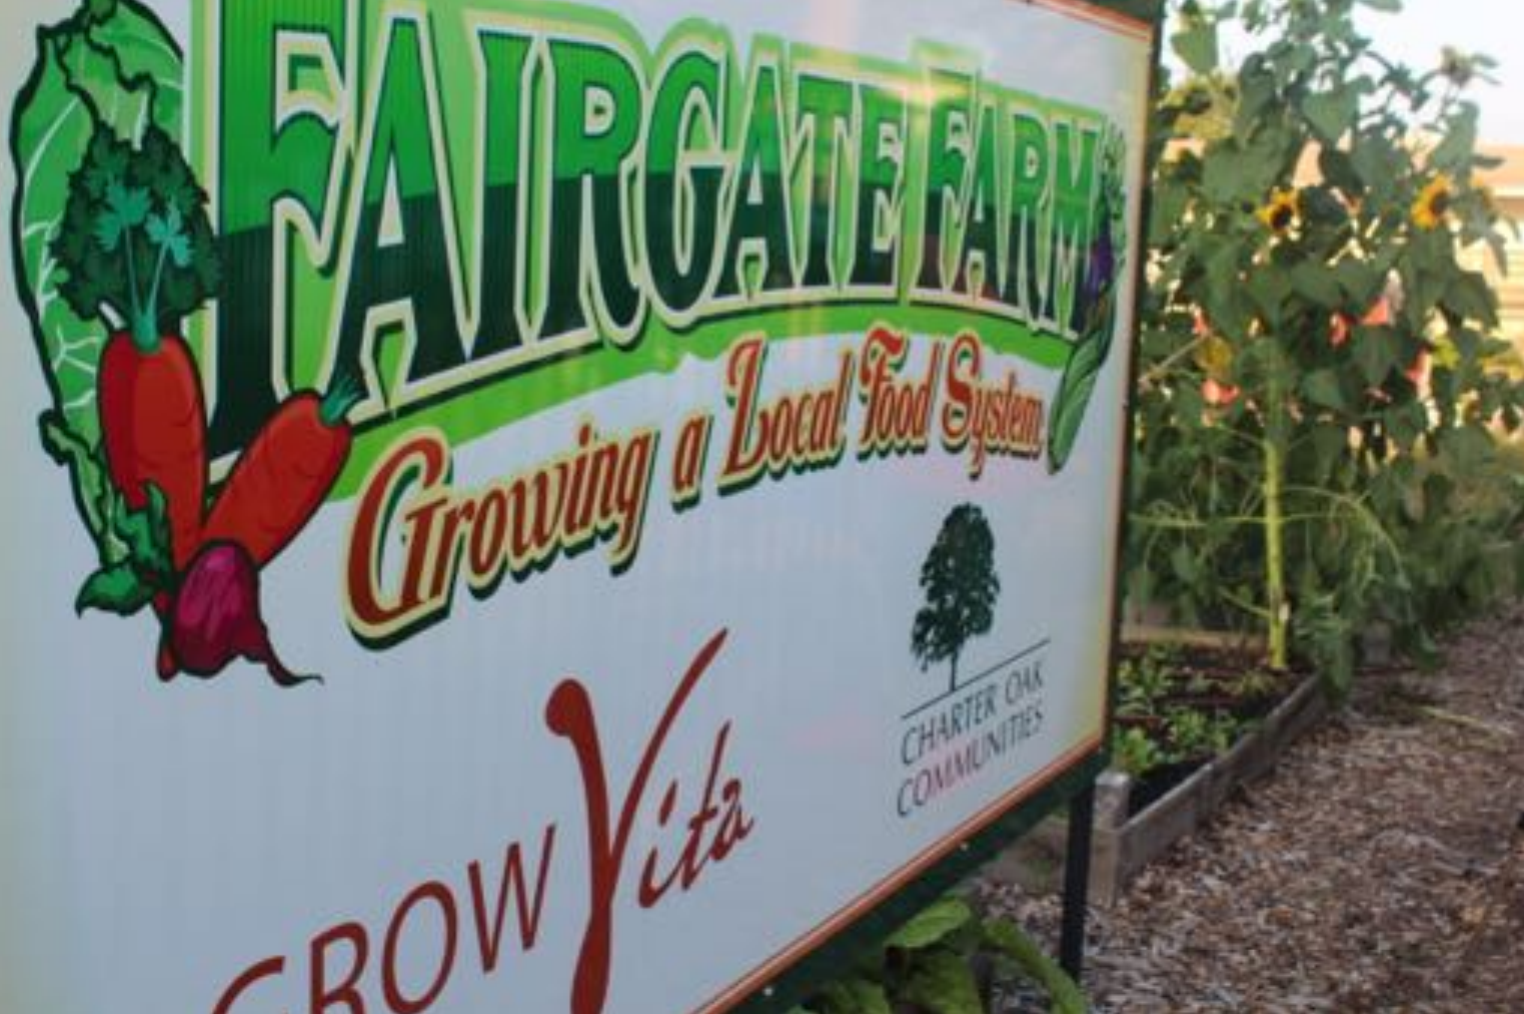 Fairgate Farm Slideshow